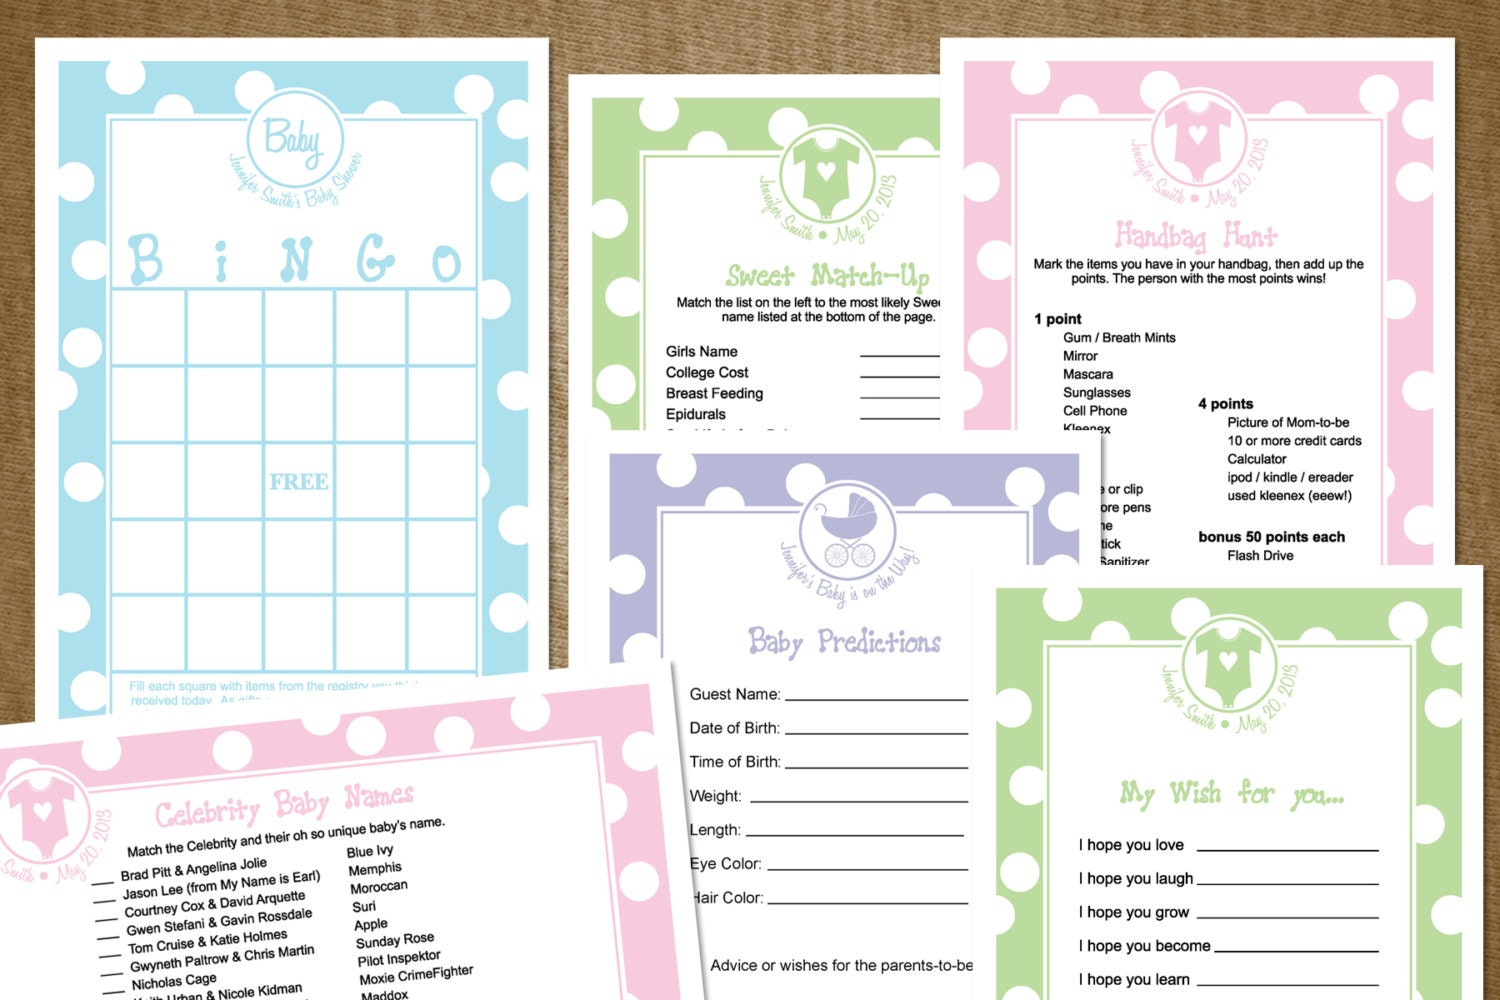 customized diy baby shower game pack with 3 games pink green